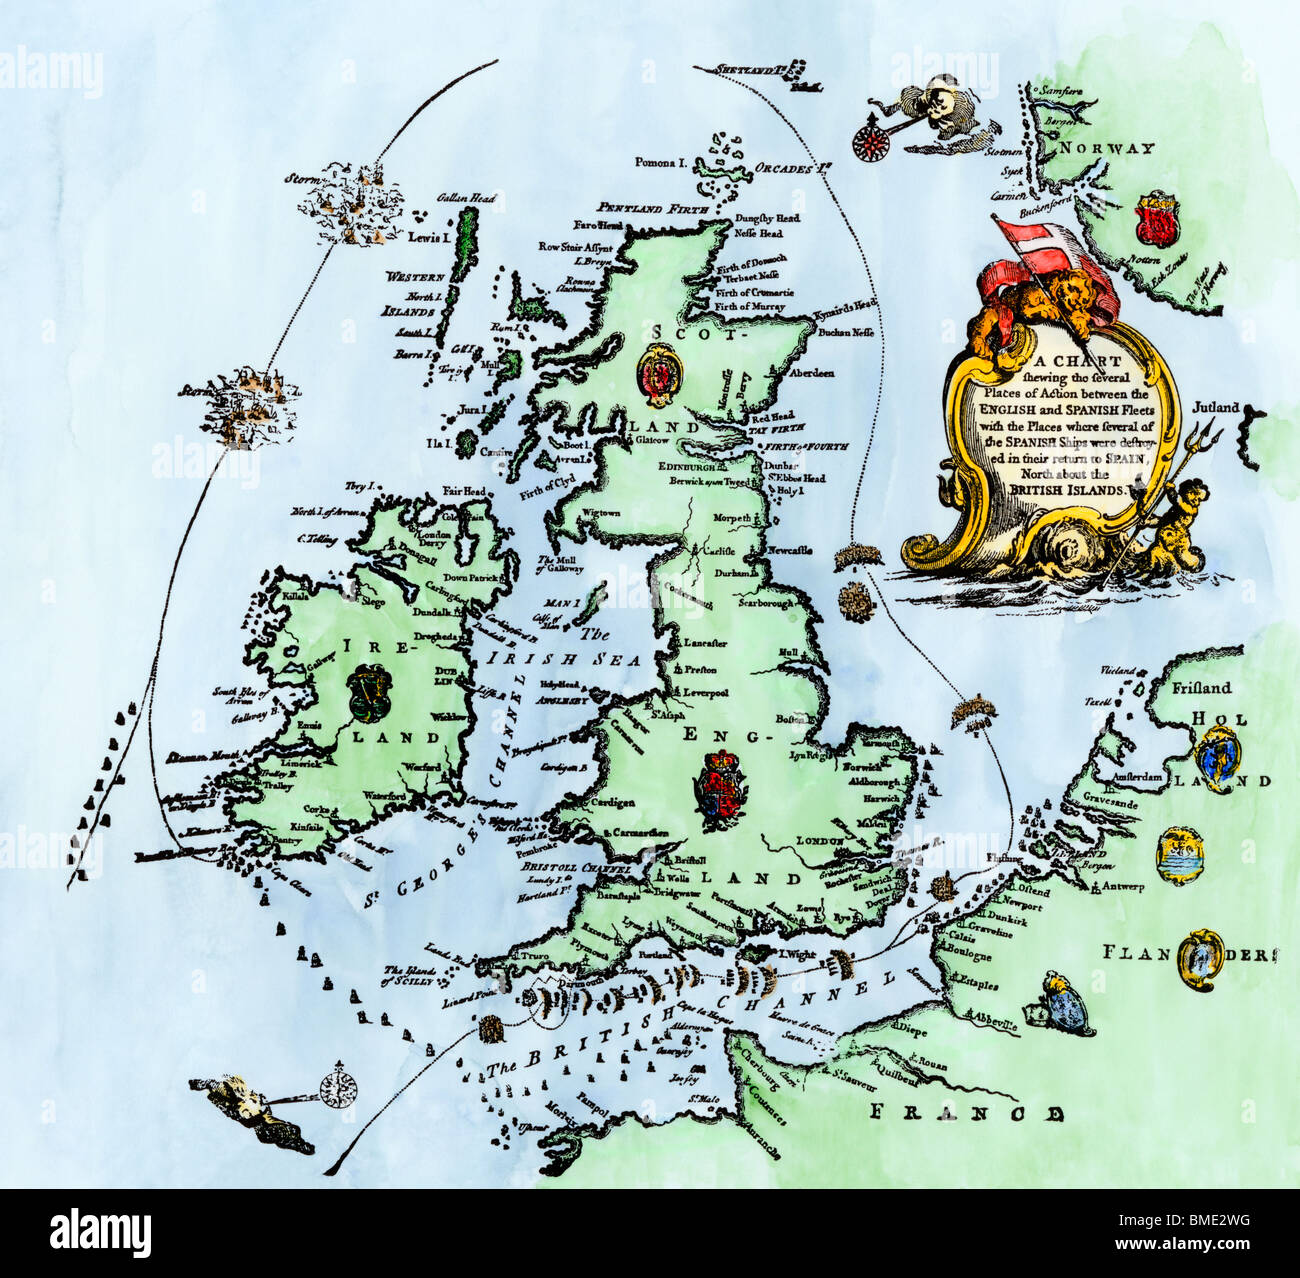 Map Of Spanish Armada High Resolution Stock Photography And Images Alamy